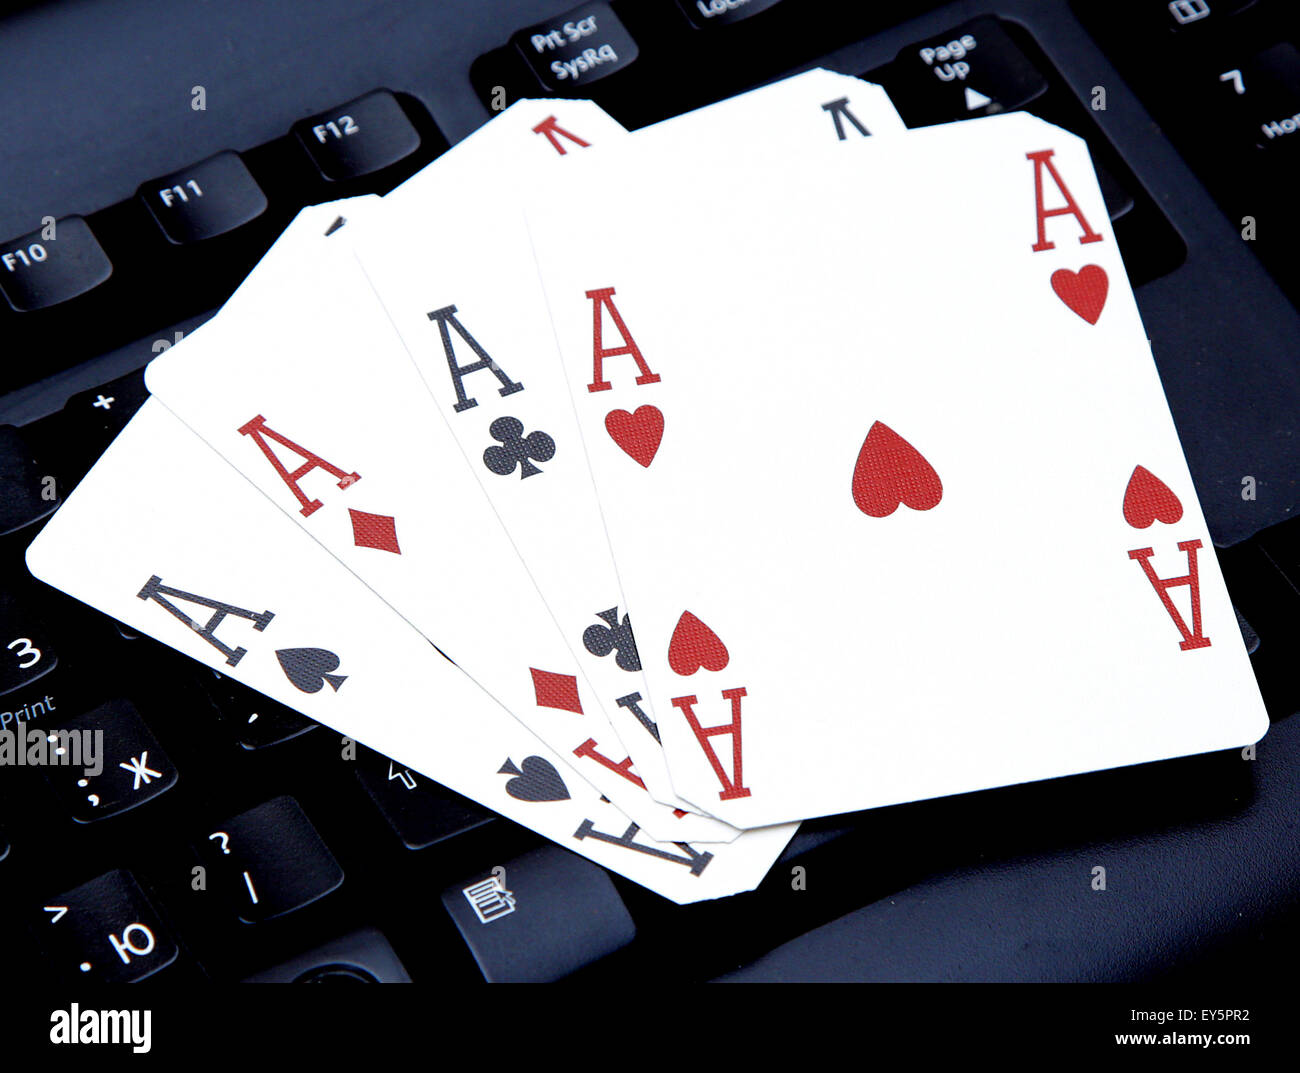 internet casino poker four of kind aces cards comdination hearts on keyboard - Stock Image